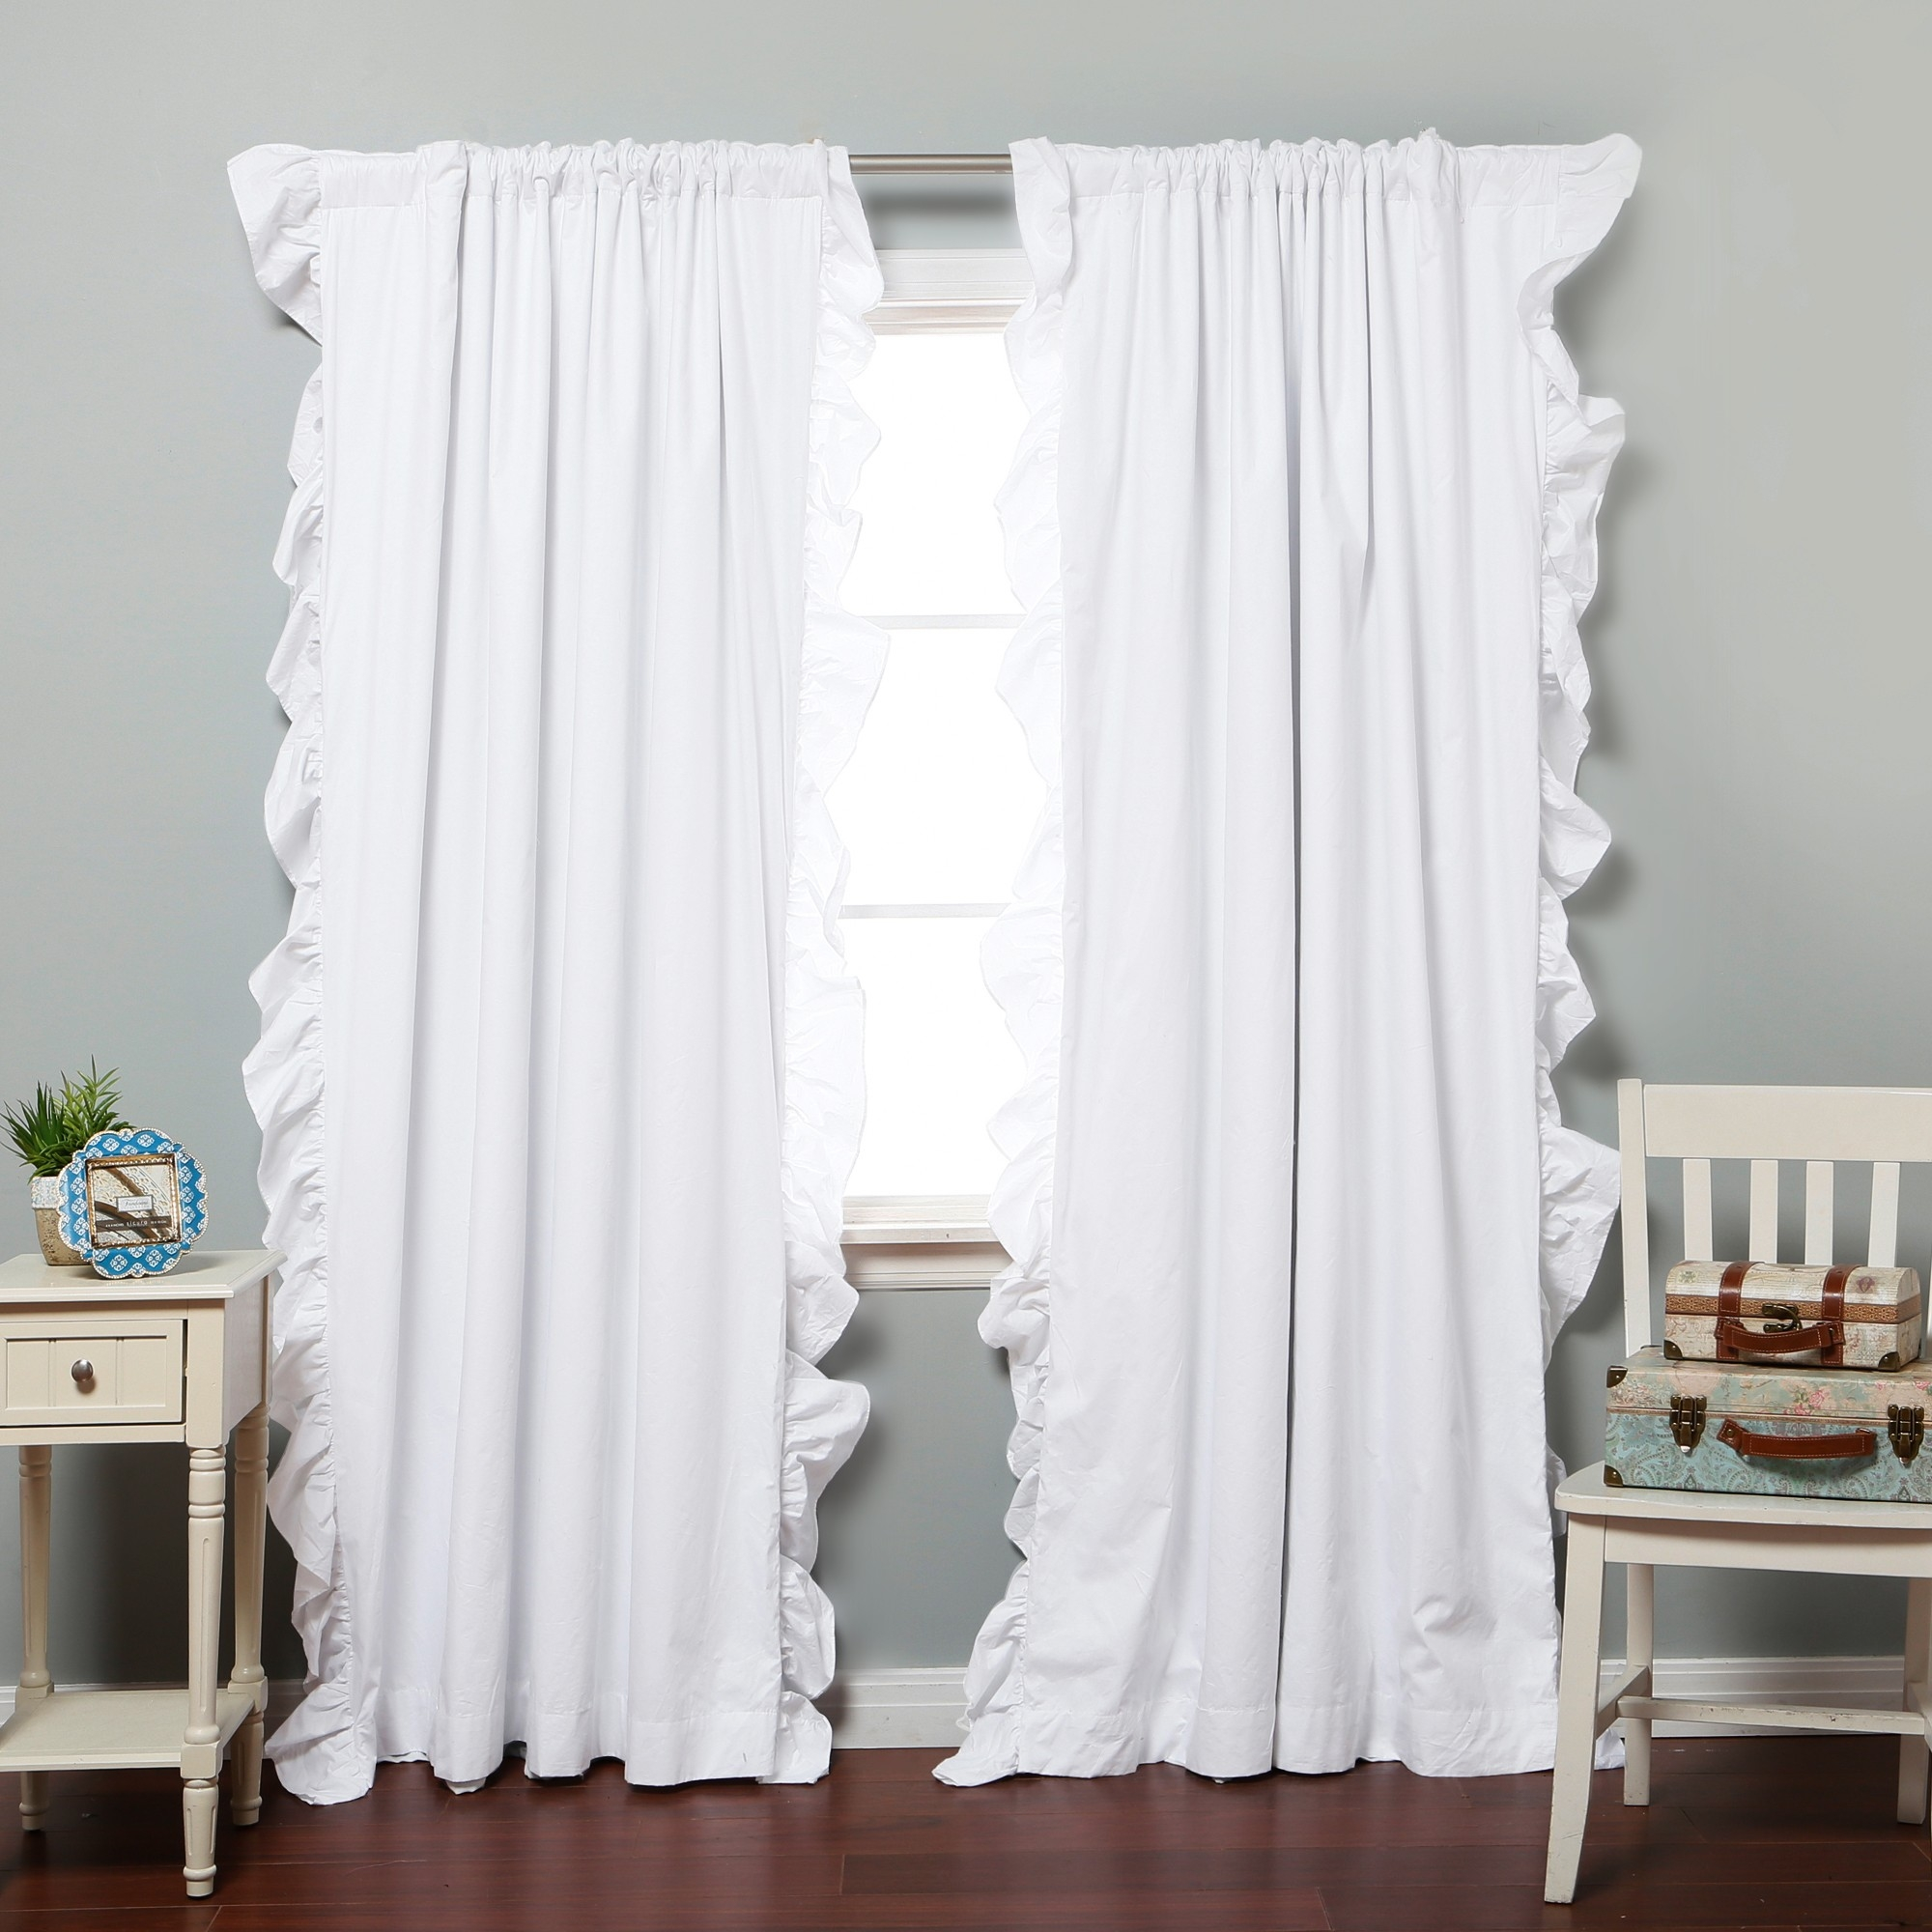 15 Plain White Blackout Curtains Curtain Ideas